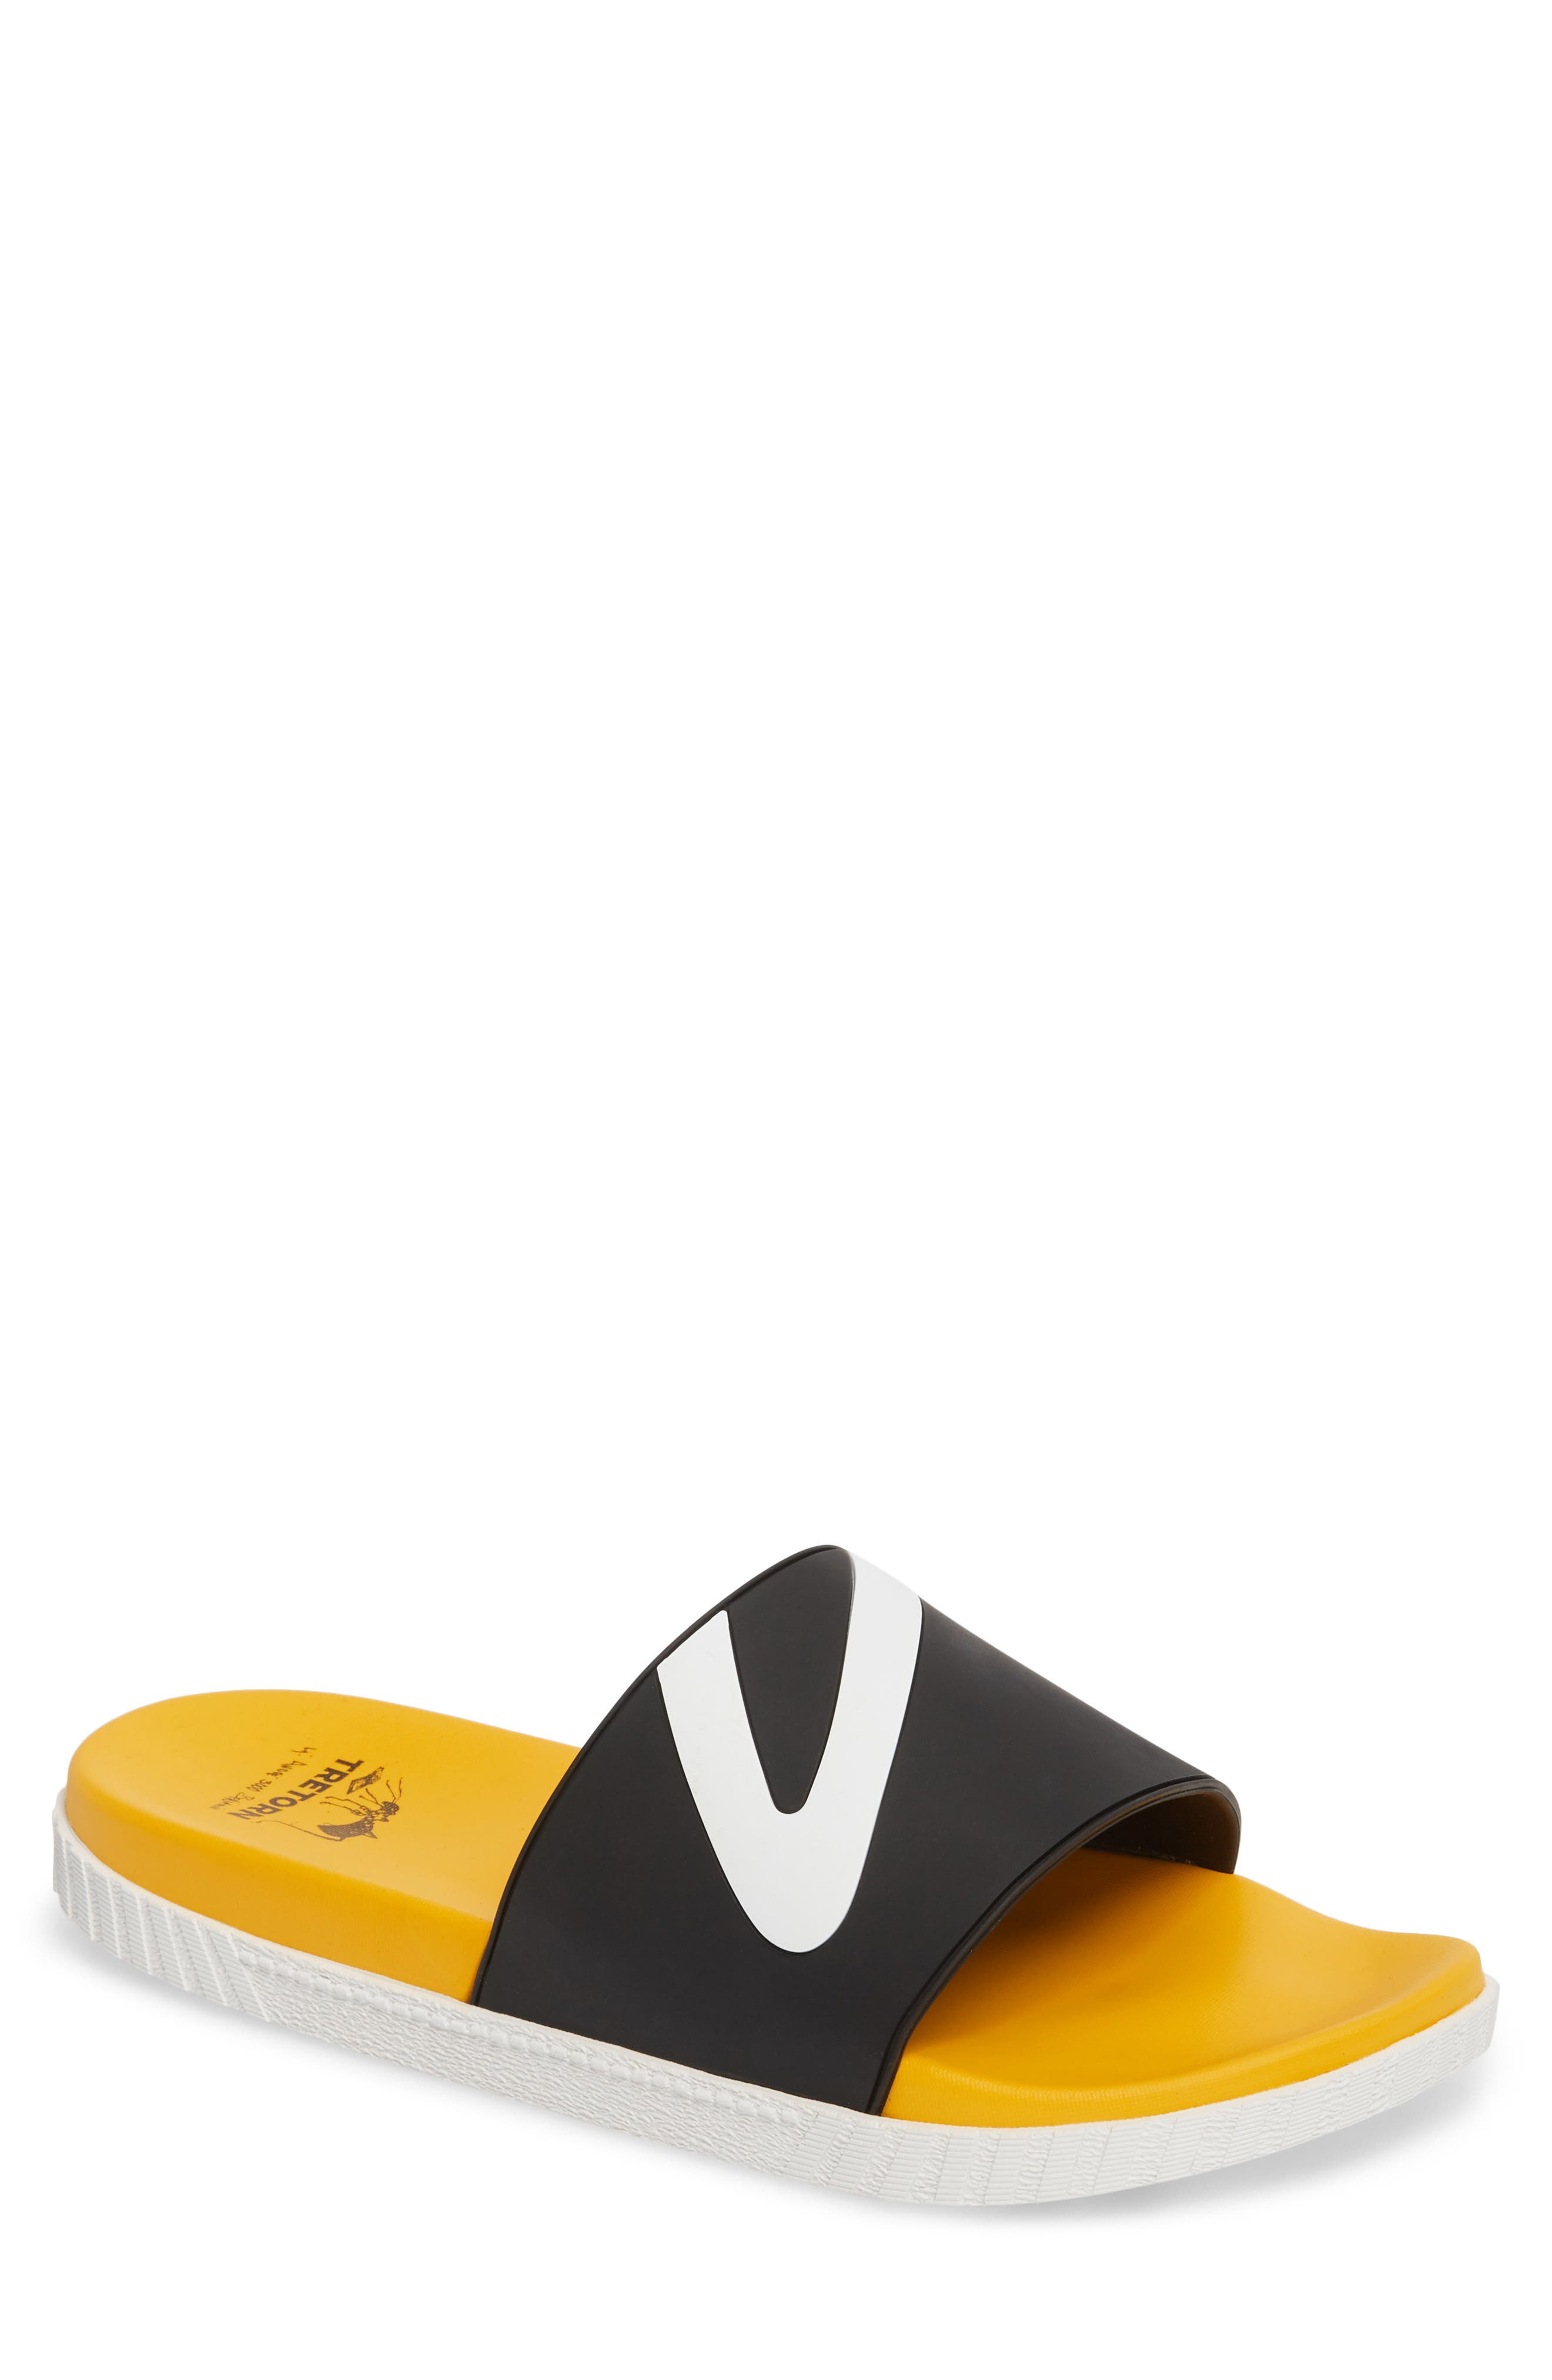 Andre 3000 Slide Sandal,                         Main,                         color, 001